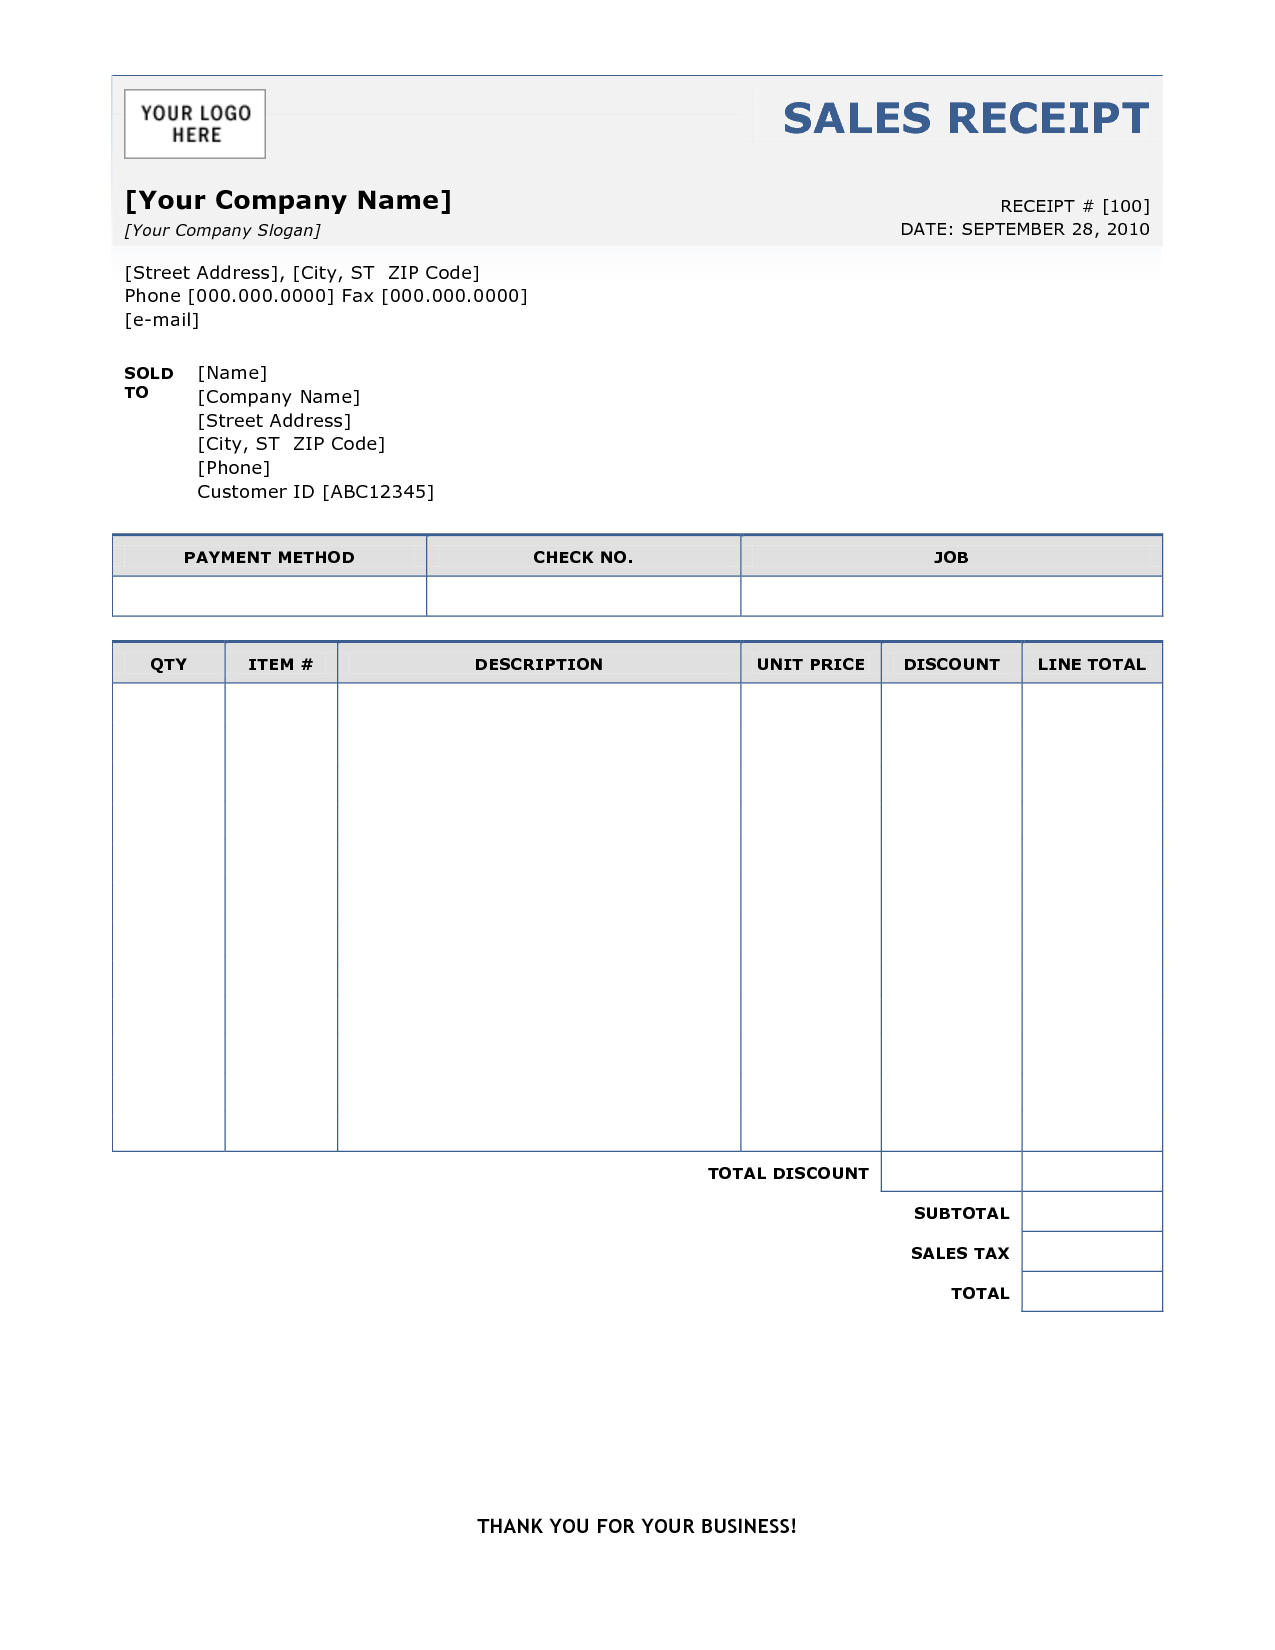 Invoice Template for Ipad and Sample Invoice Receipt Free Free Invoice Template